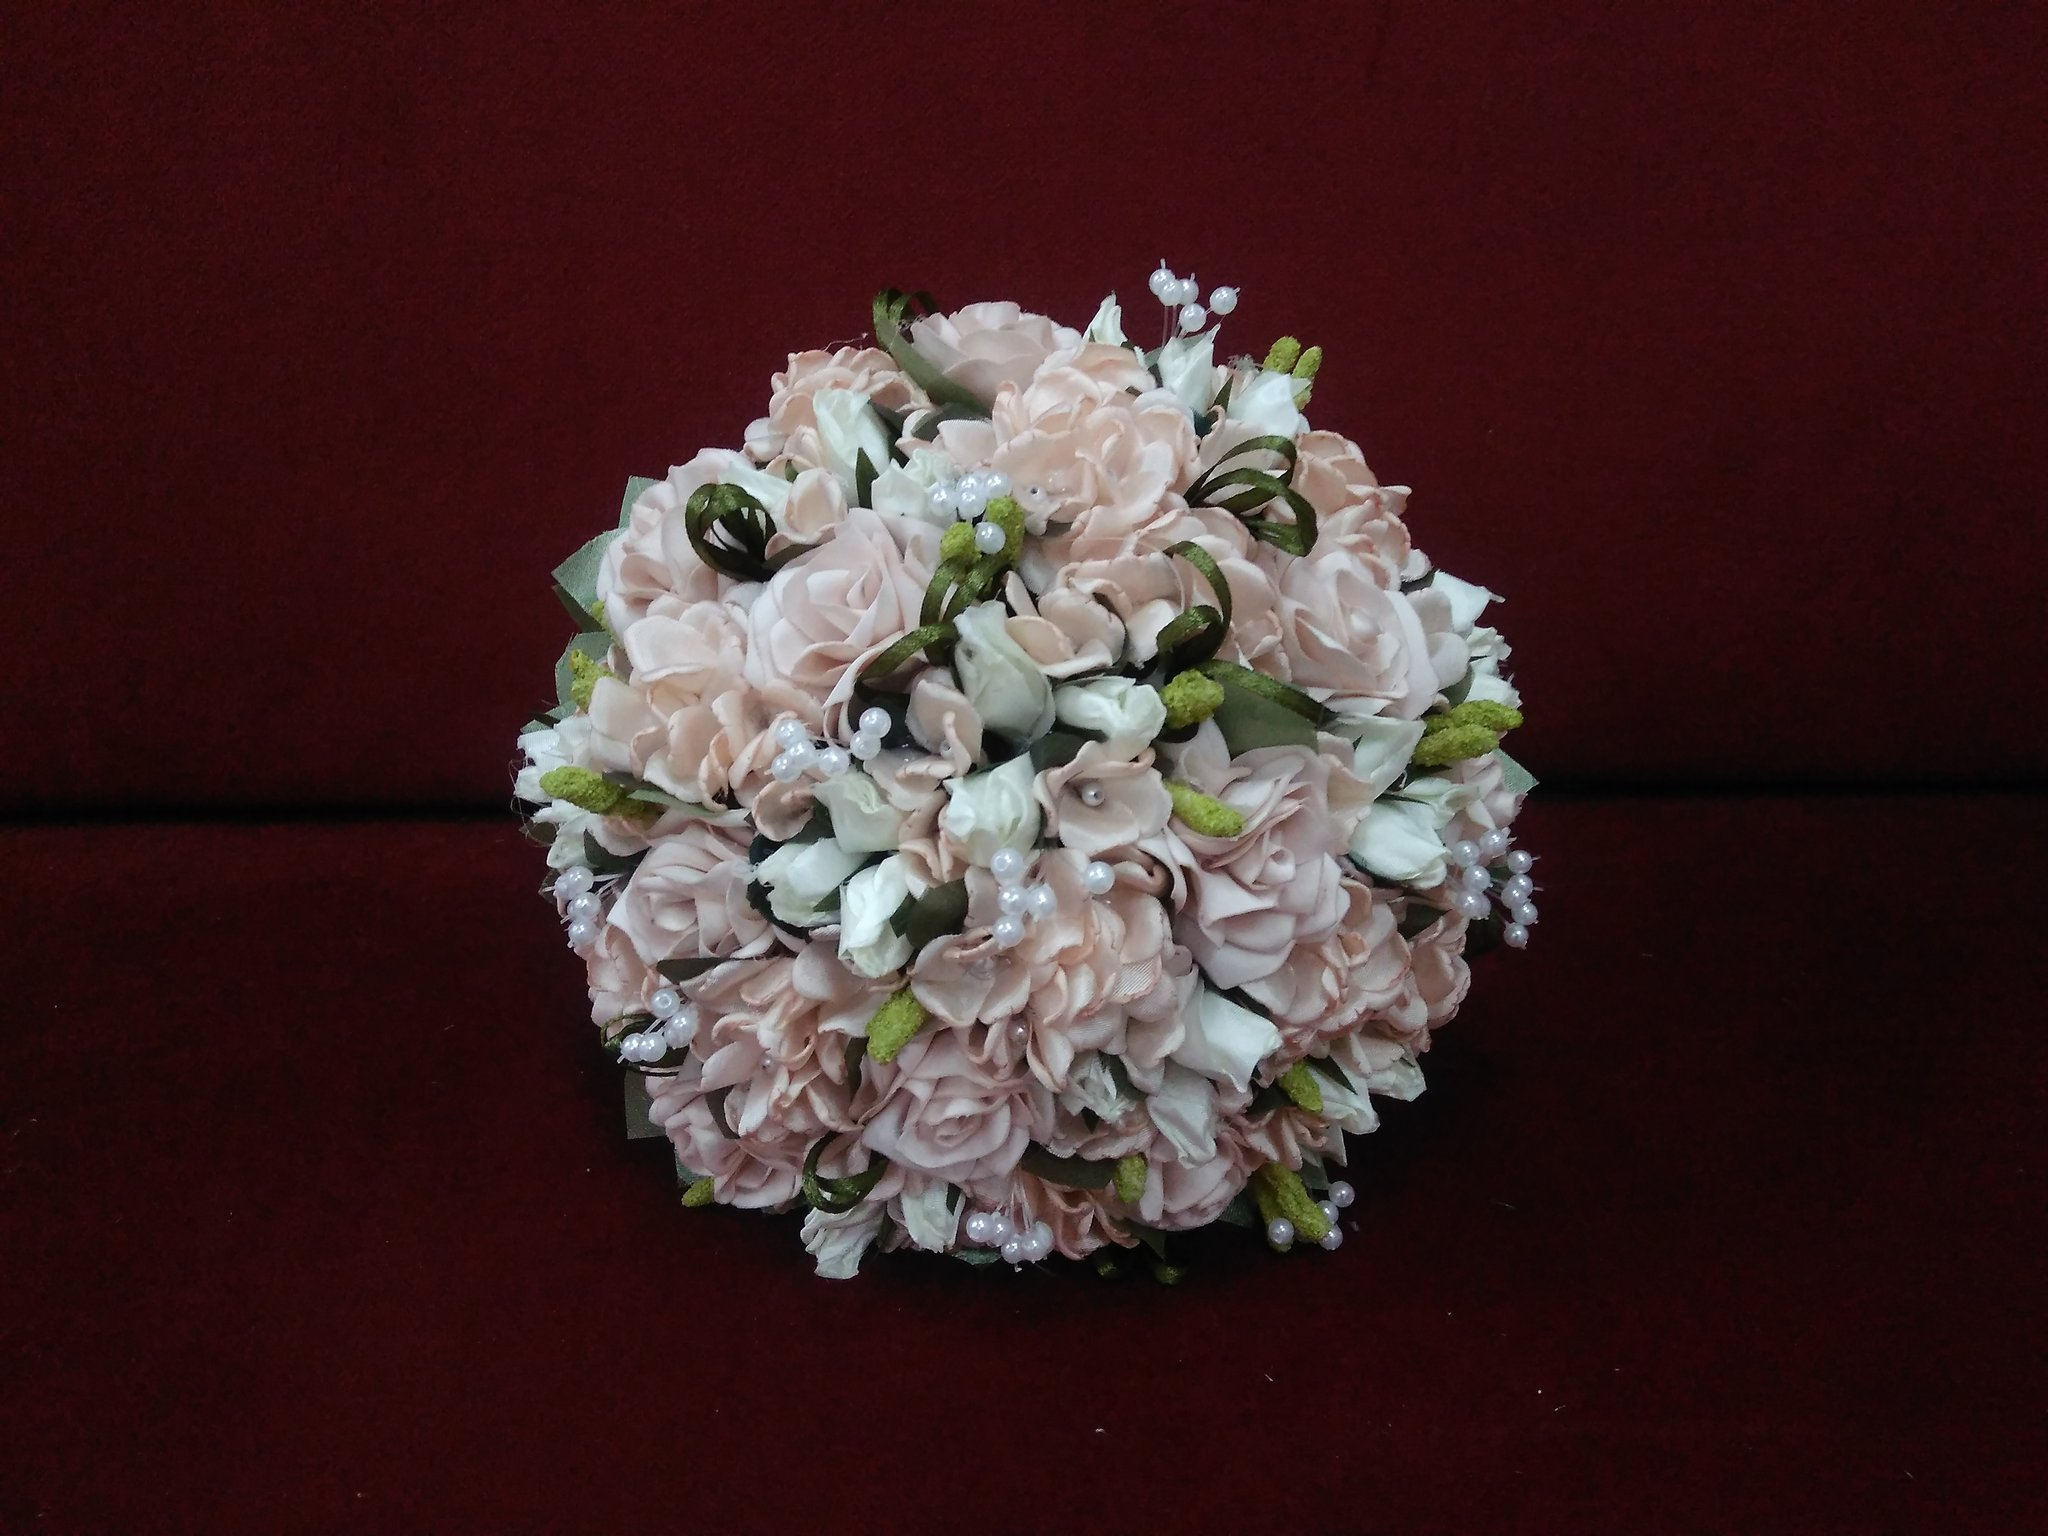 Blush wedding bouquet of roses